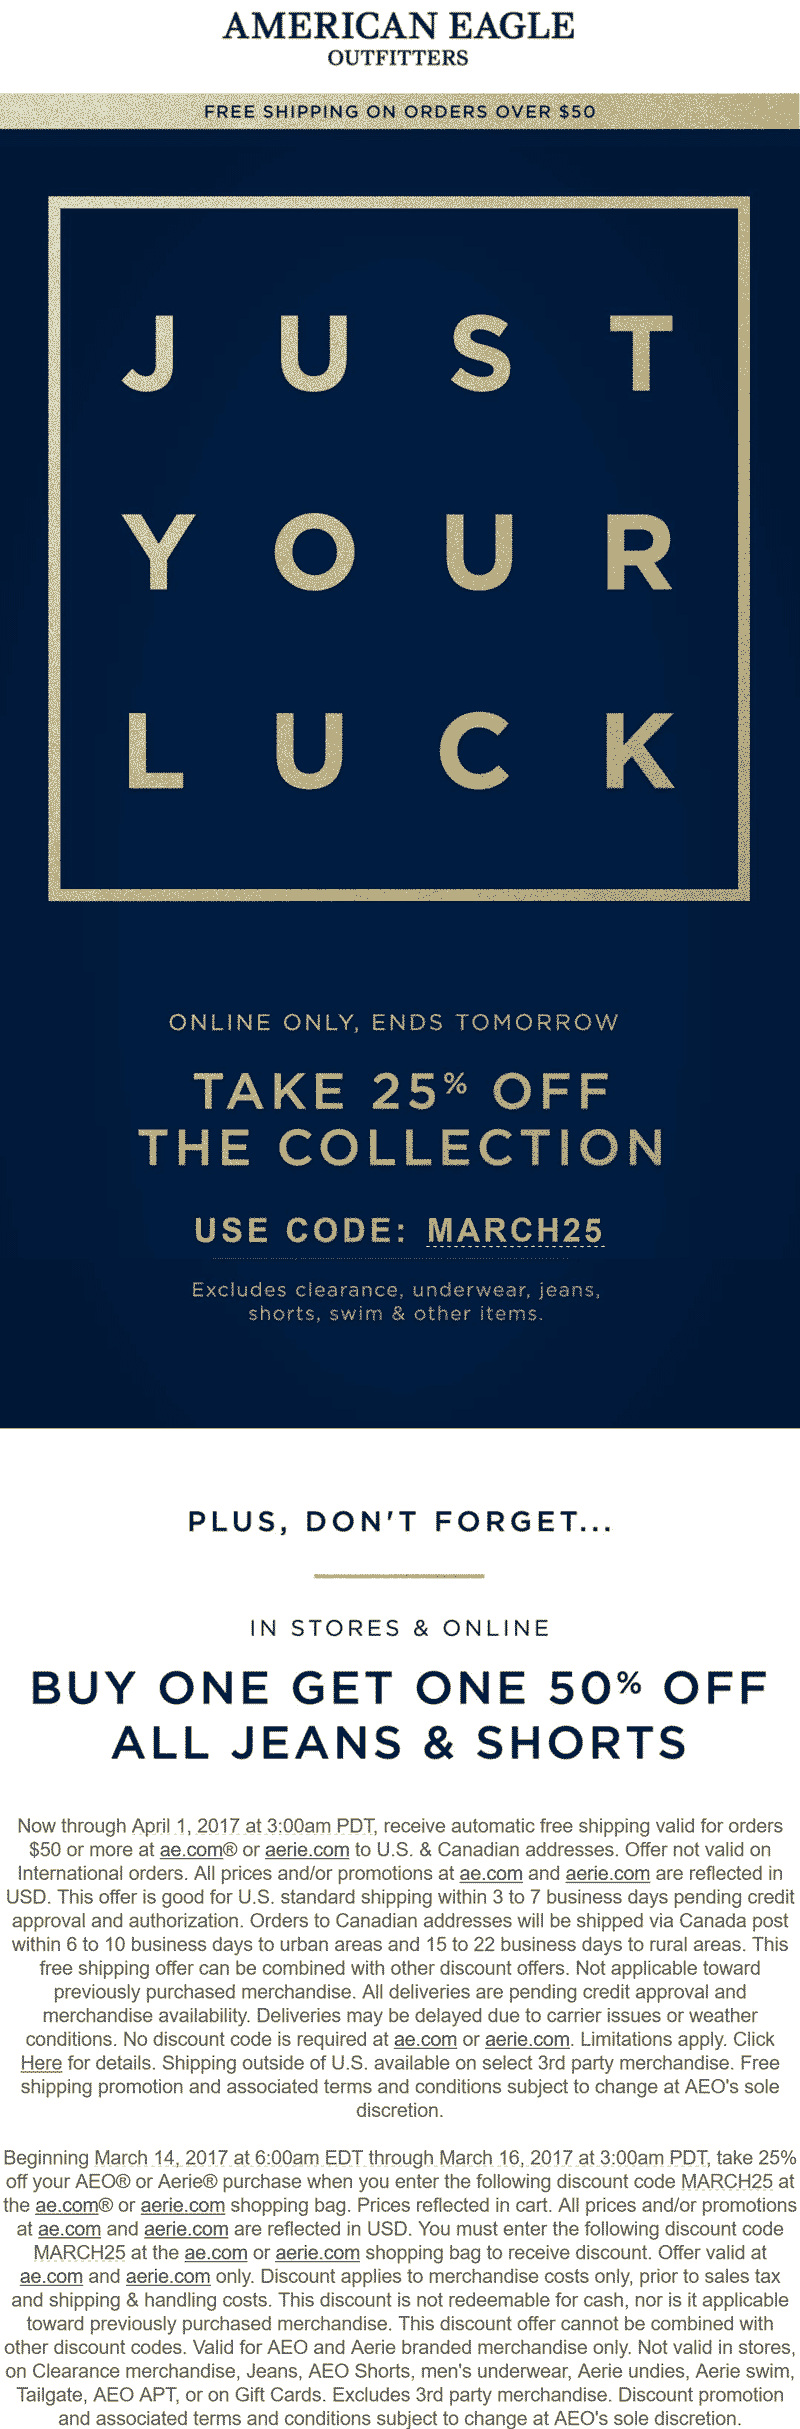 Pinned March 15th: 25% off online at American Eagle